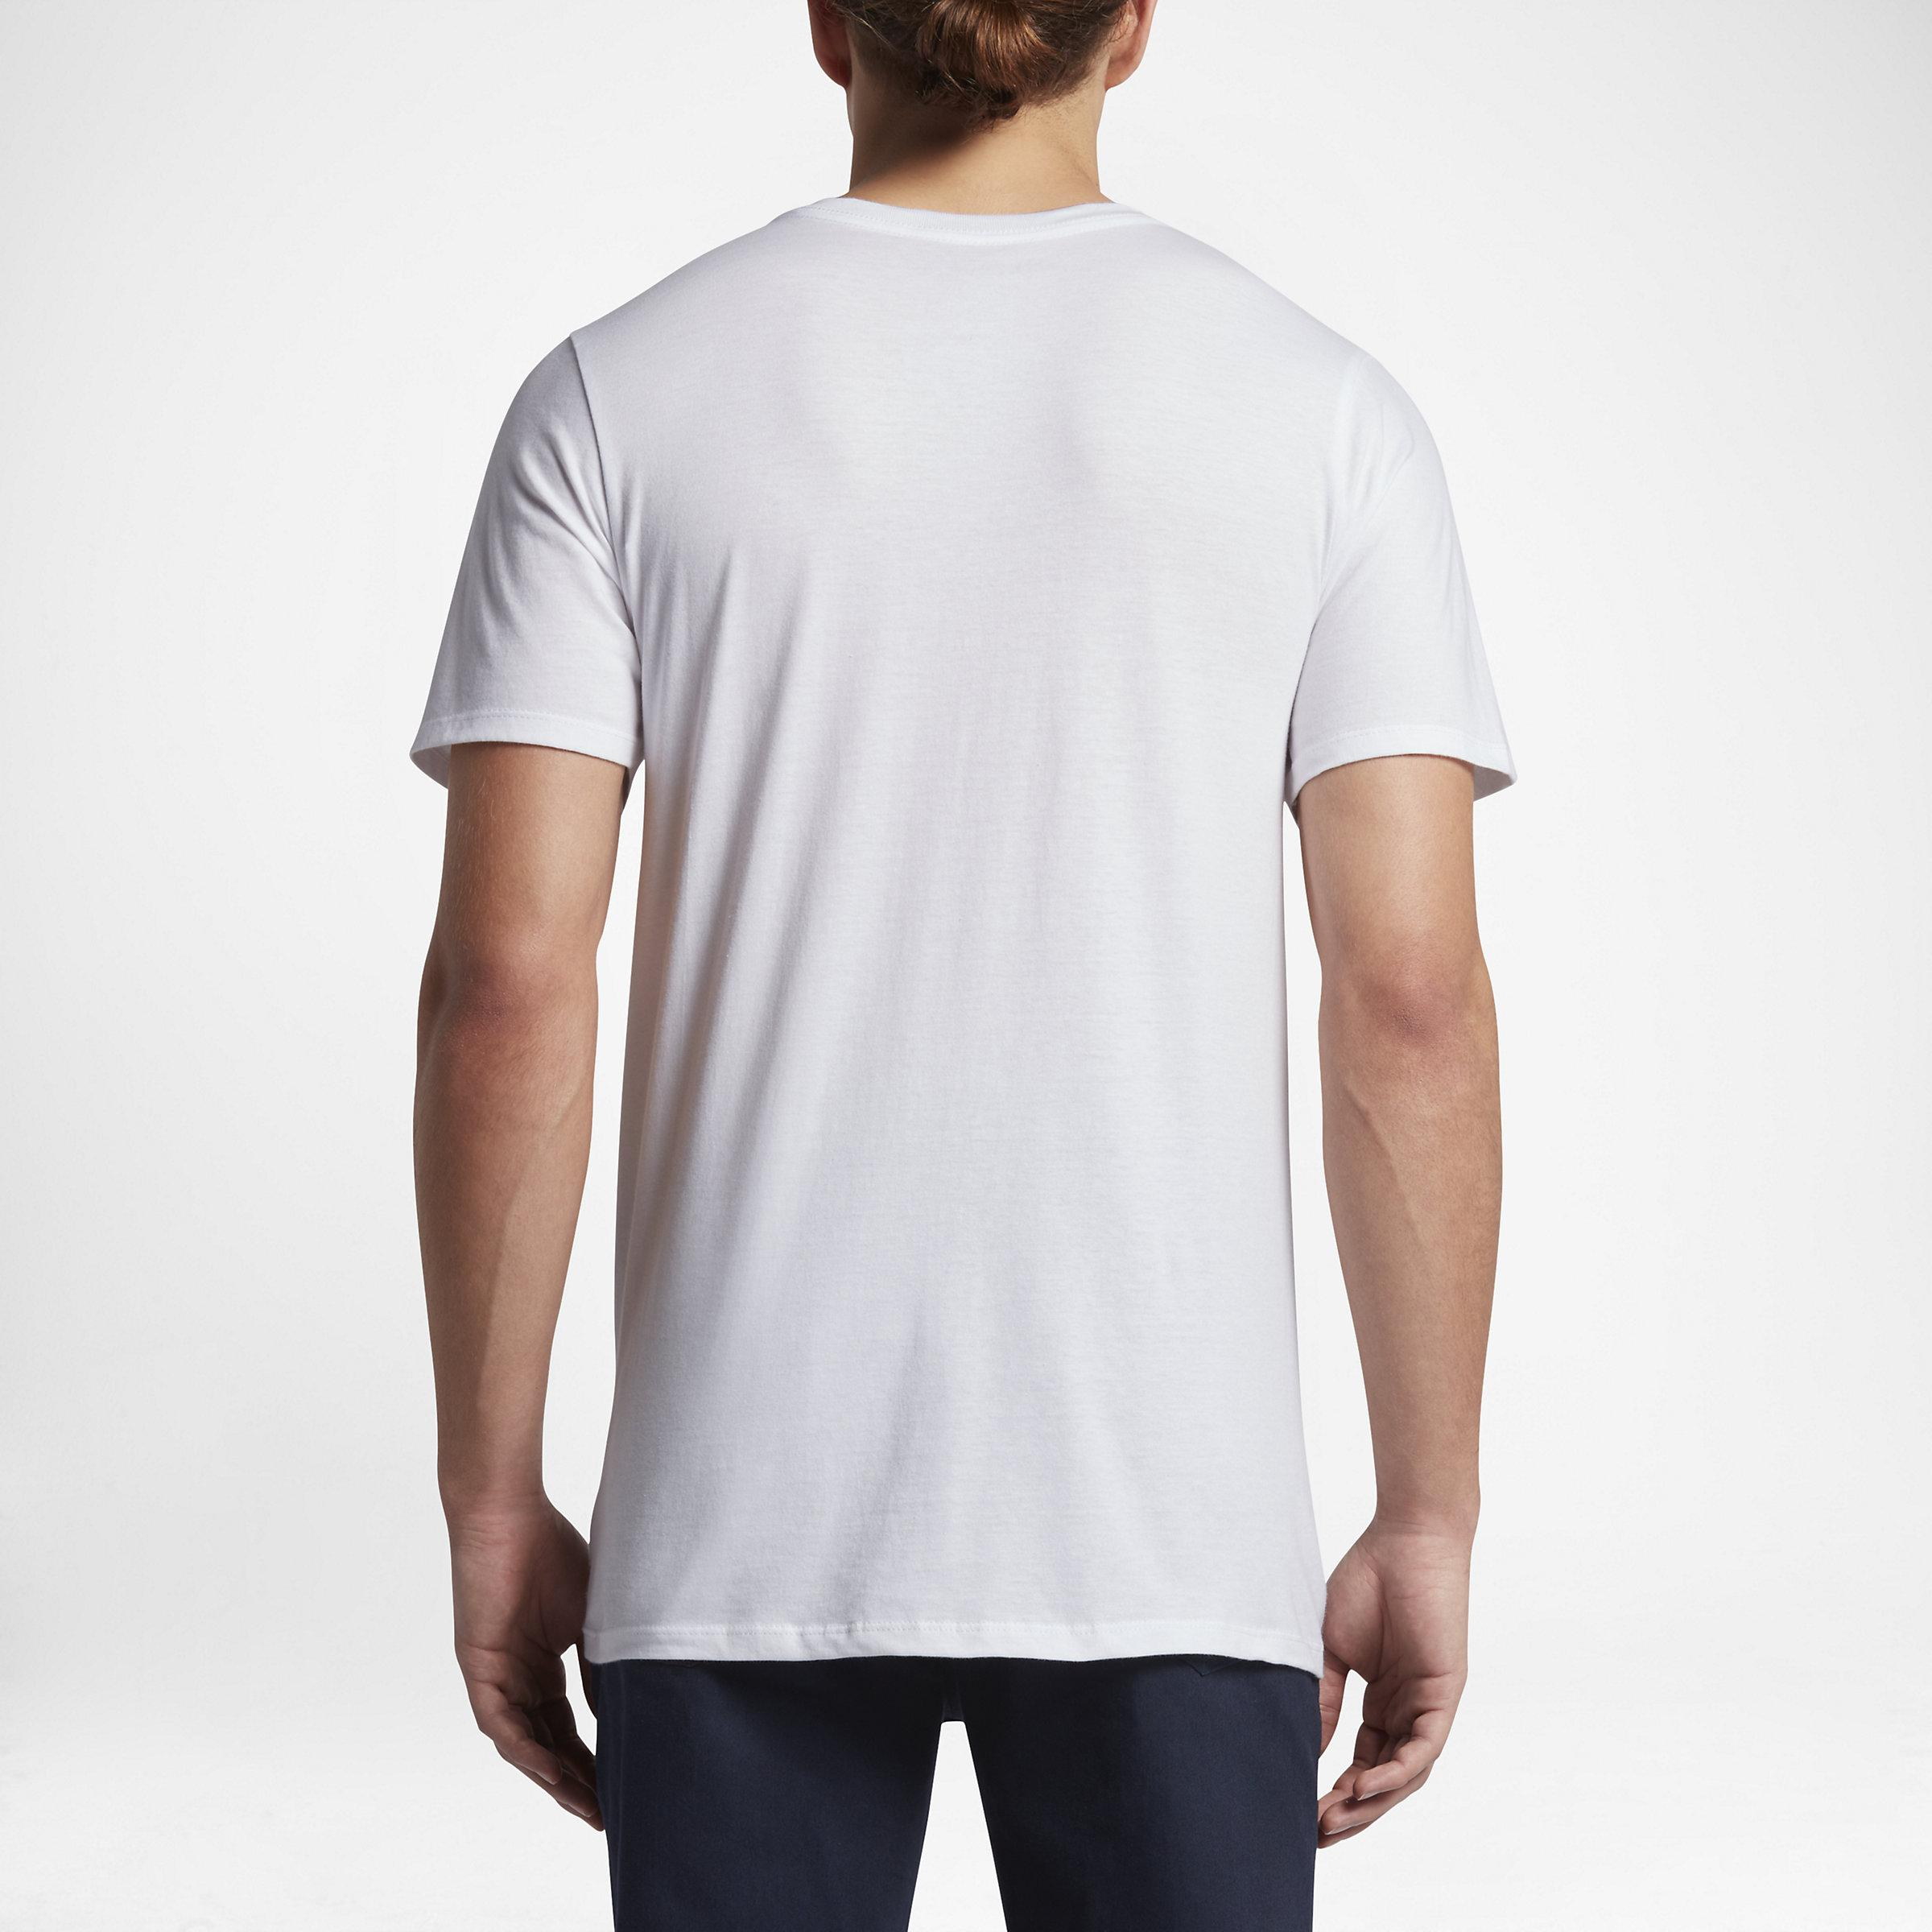 Nike Cotton Hurley Back Drop in White for Men